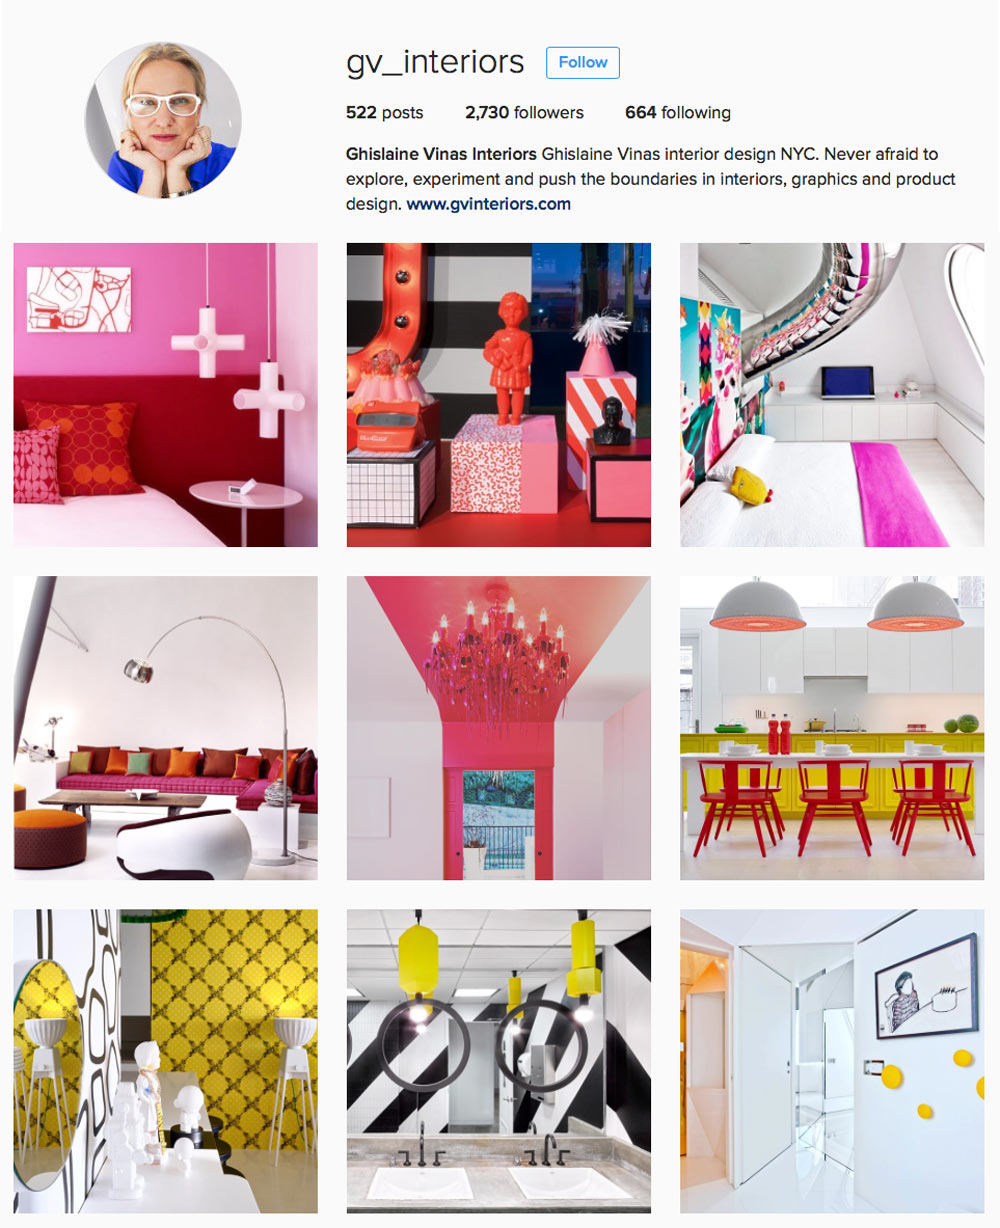 We love to visit Ghislaine's colorful Instagram world.